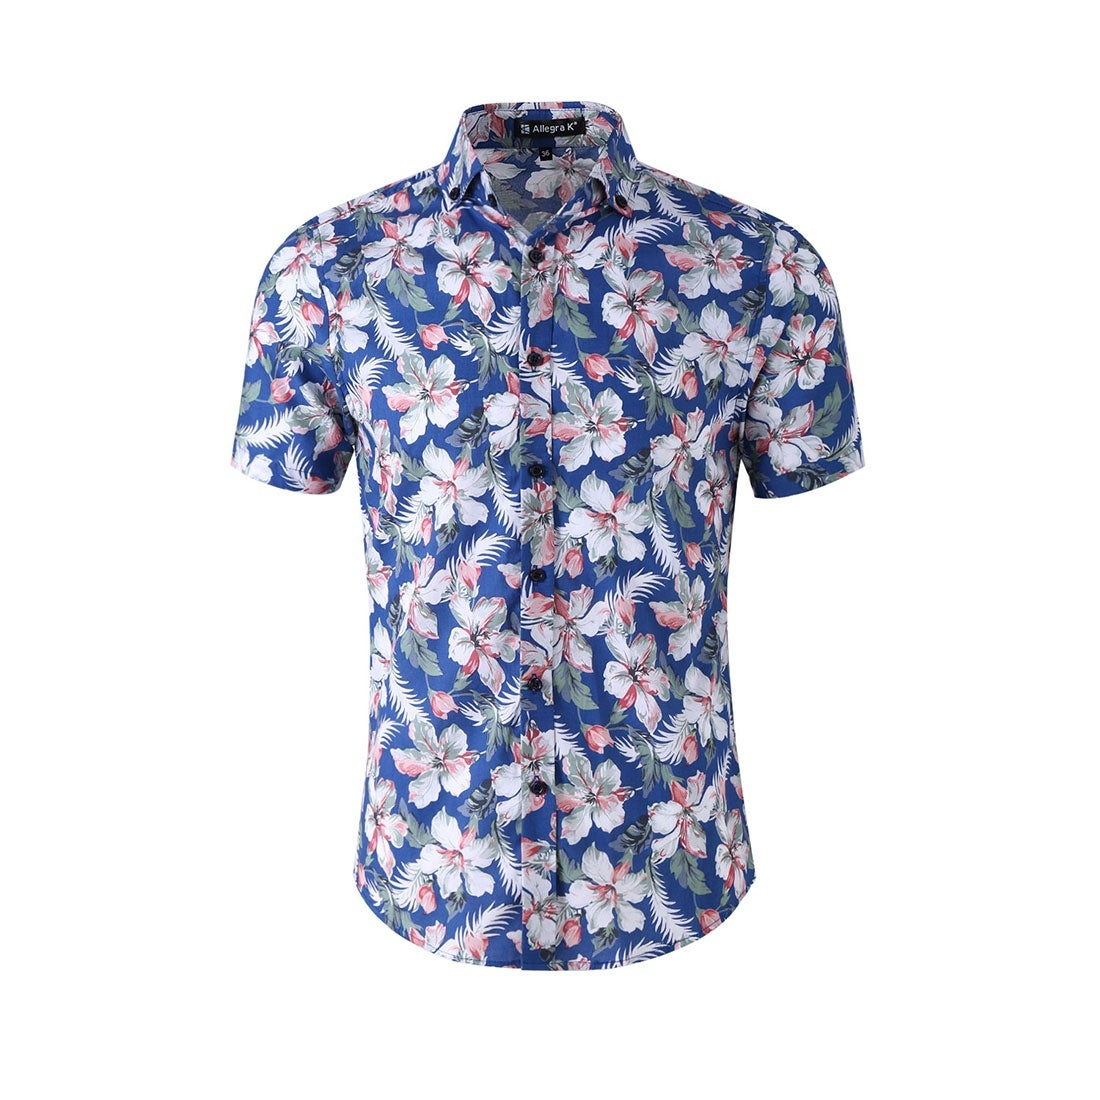 b8d6021a6 Shop Men Slim Fit Floral Print Short Sleeve Button Down Beach Hawaiian Shirt  - Free Shipping On Orders Over $45 - Overstock - 23563188